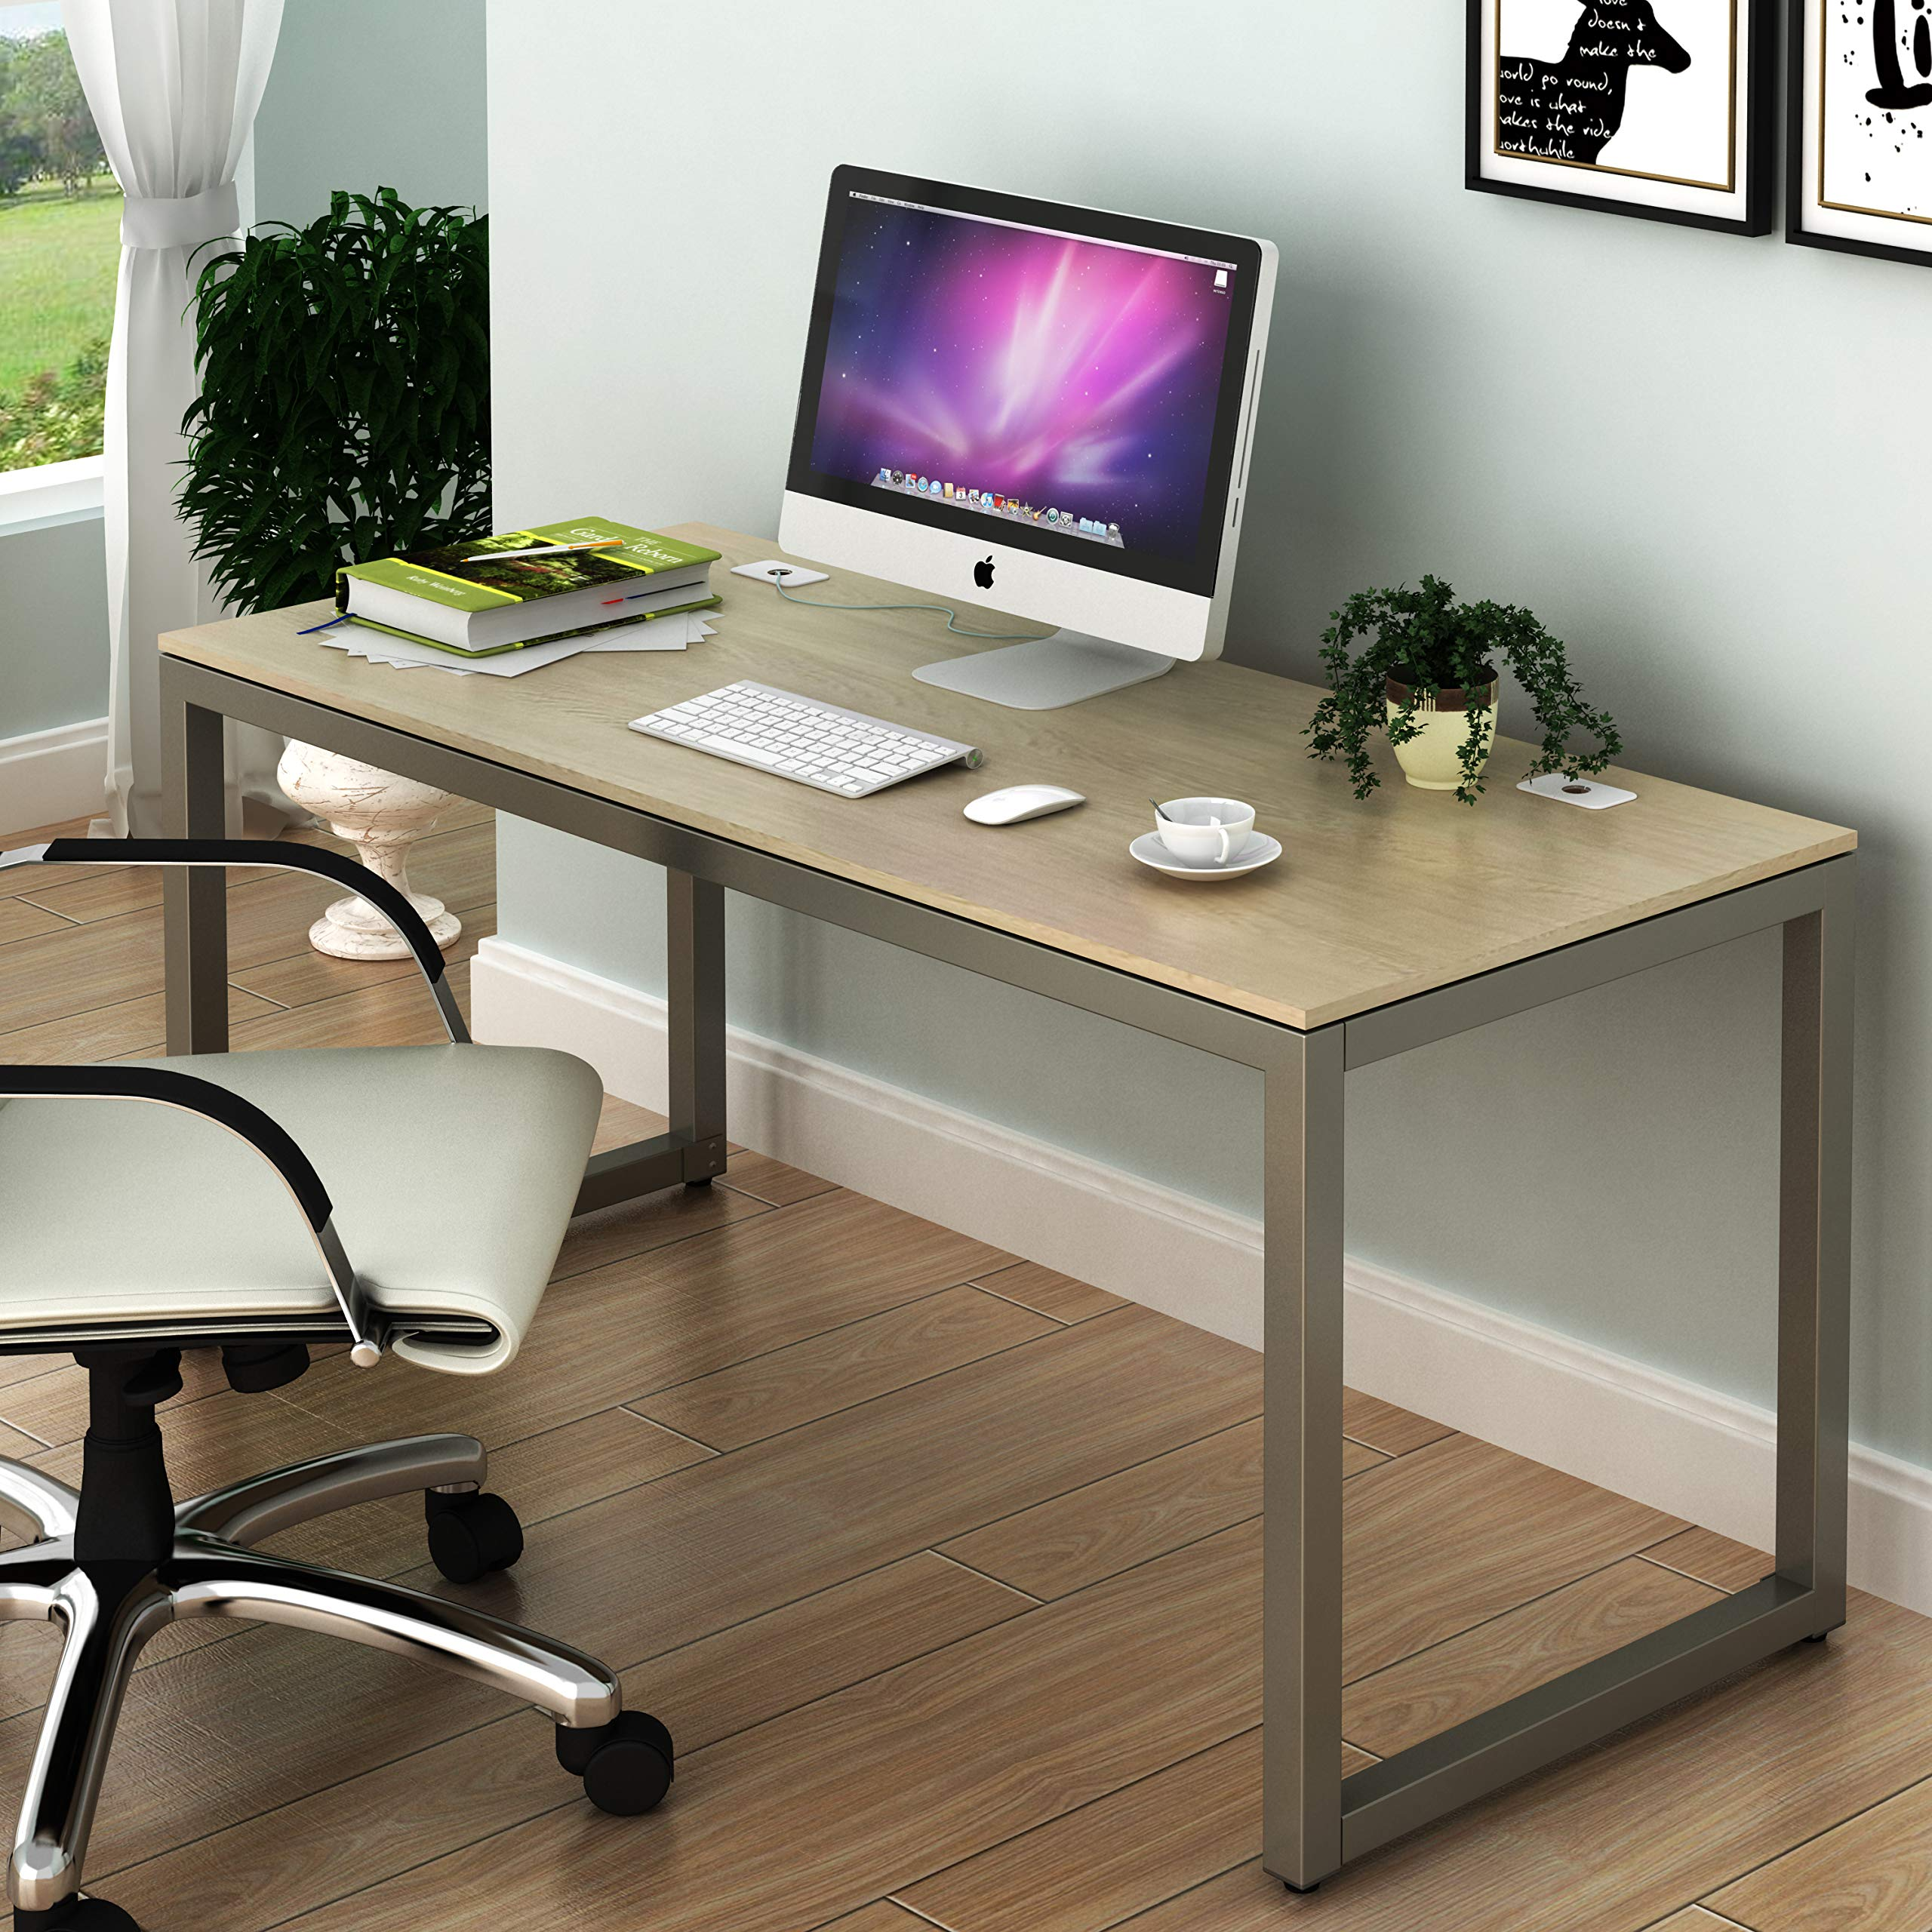 SHW Home Office 55-Inch Large Computer Desk, Silver Frame W/Grey Top by SHW